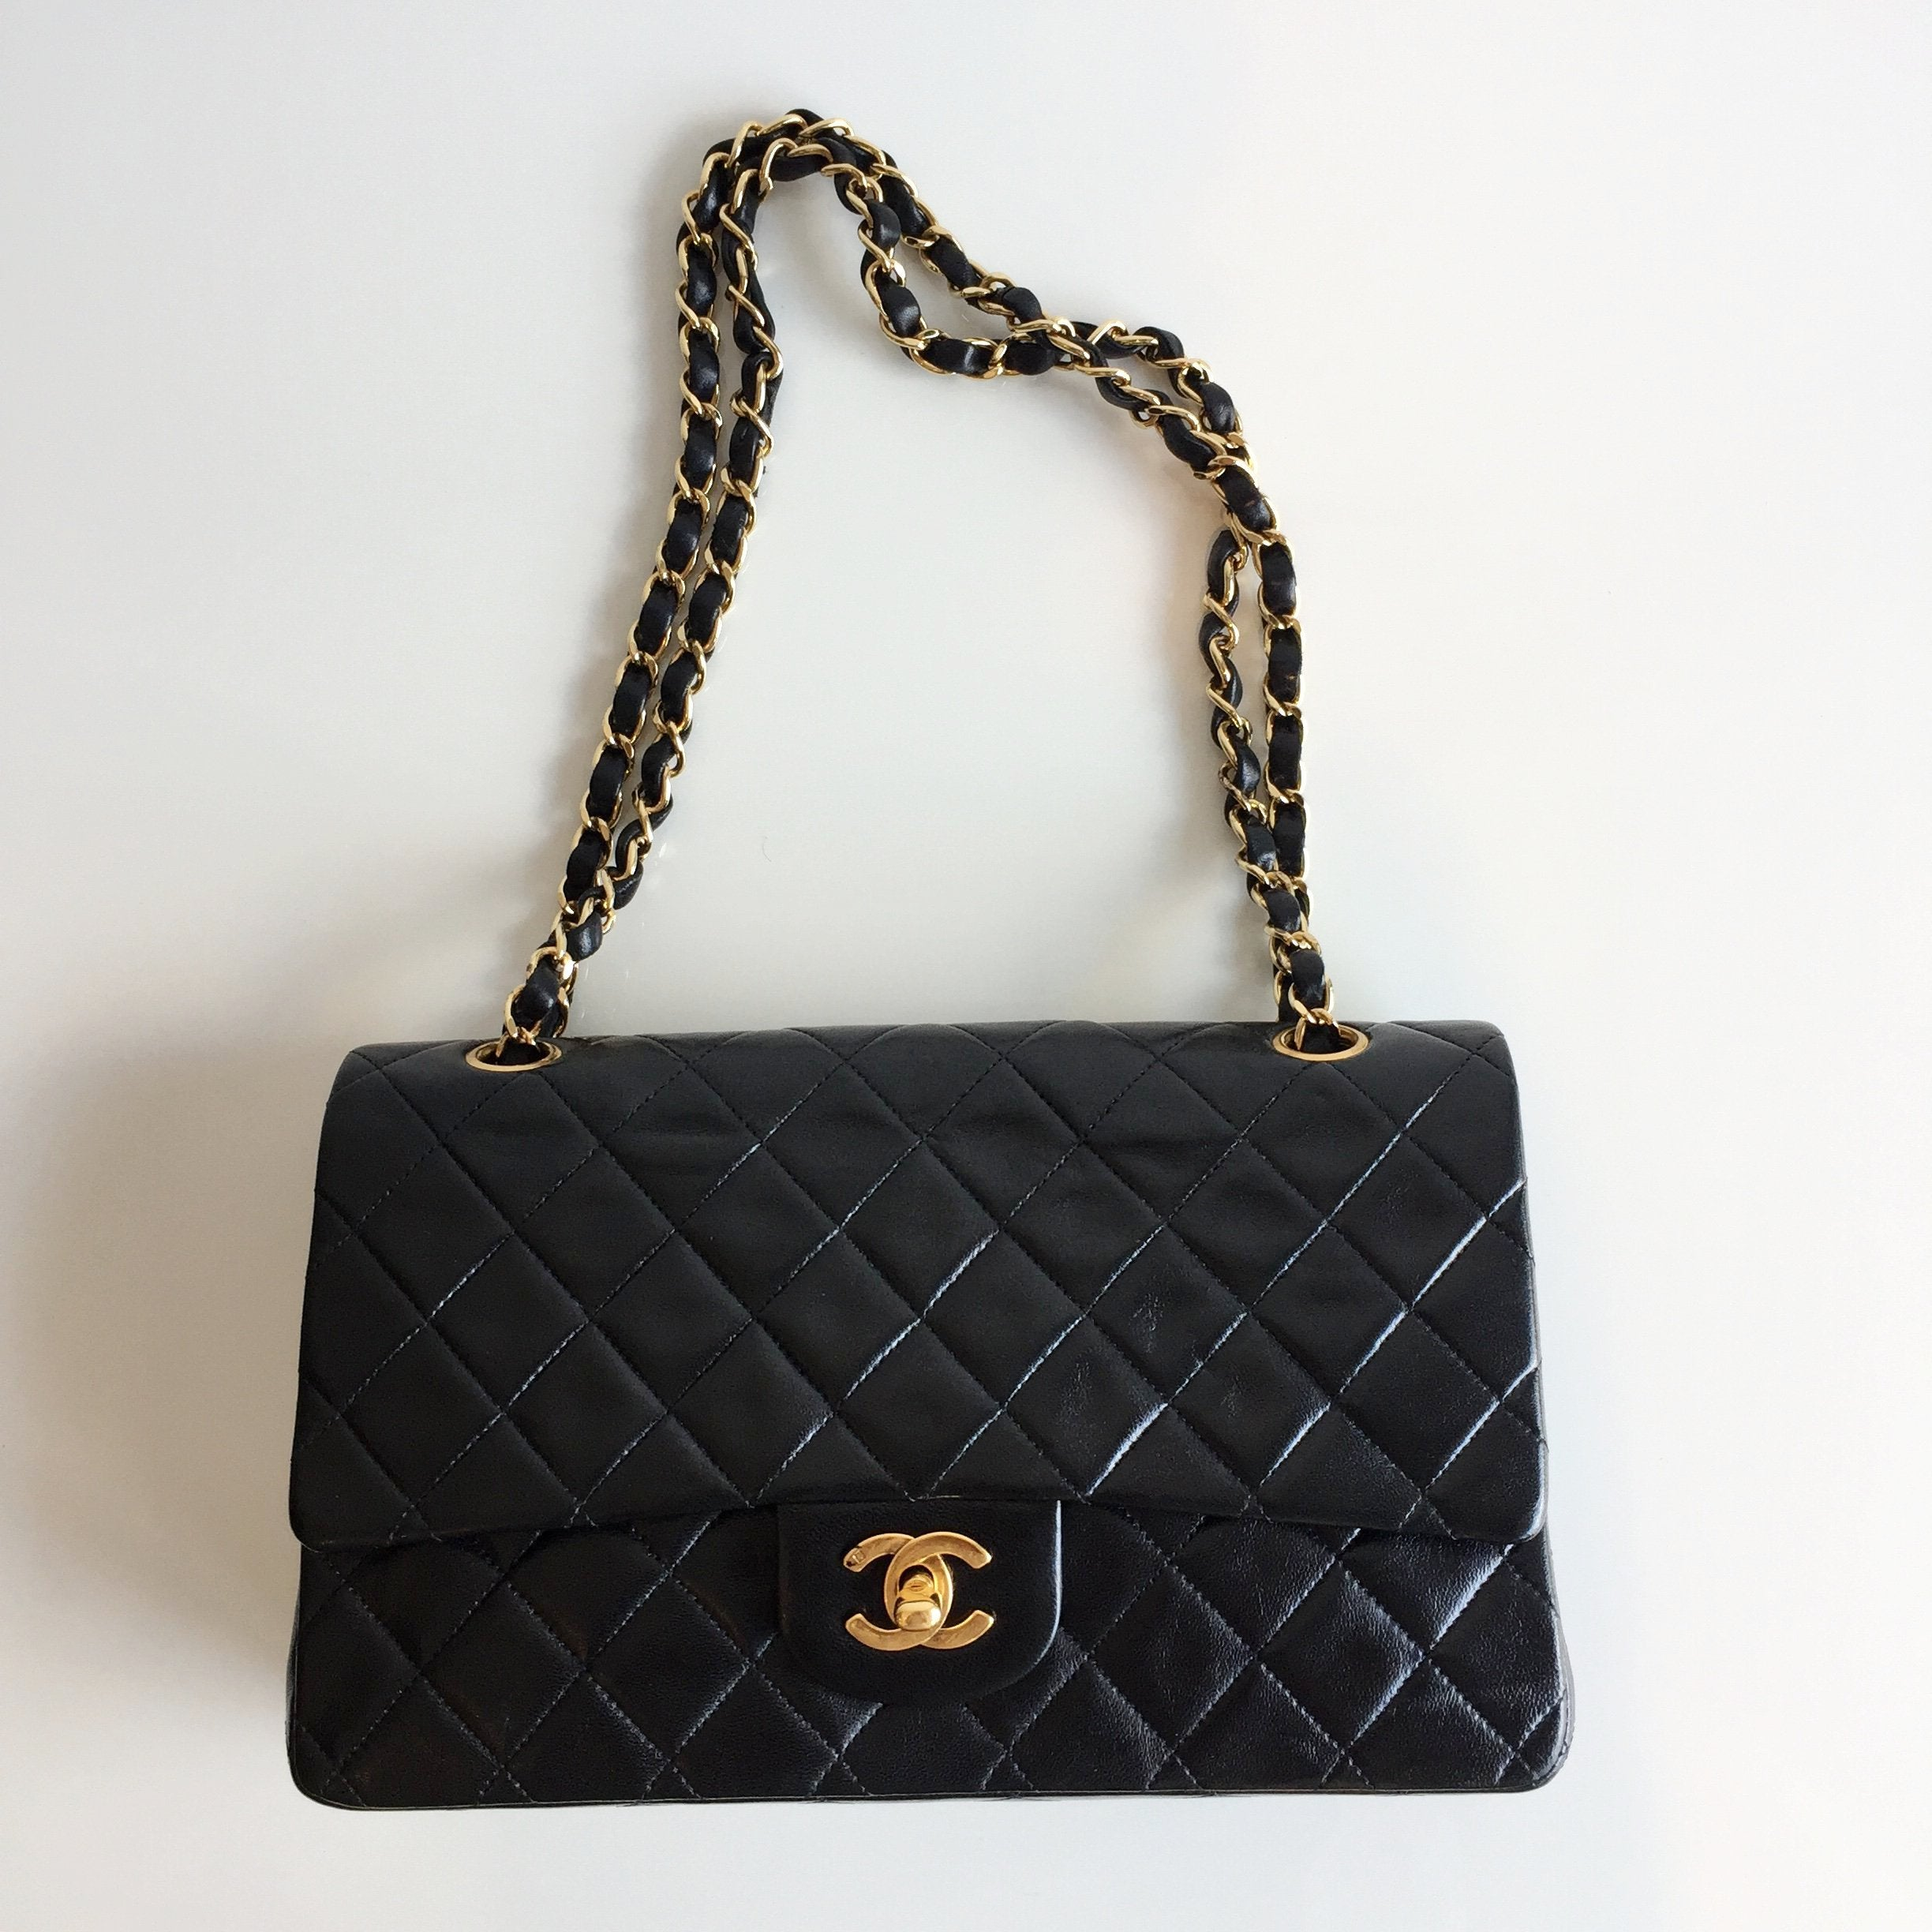 Authentic CHANEL Vintage Double Flap Bag 10""